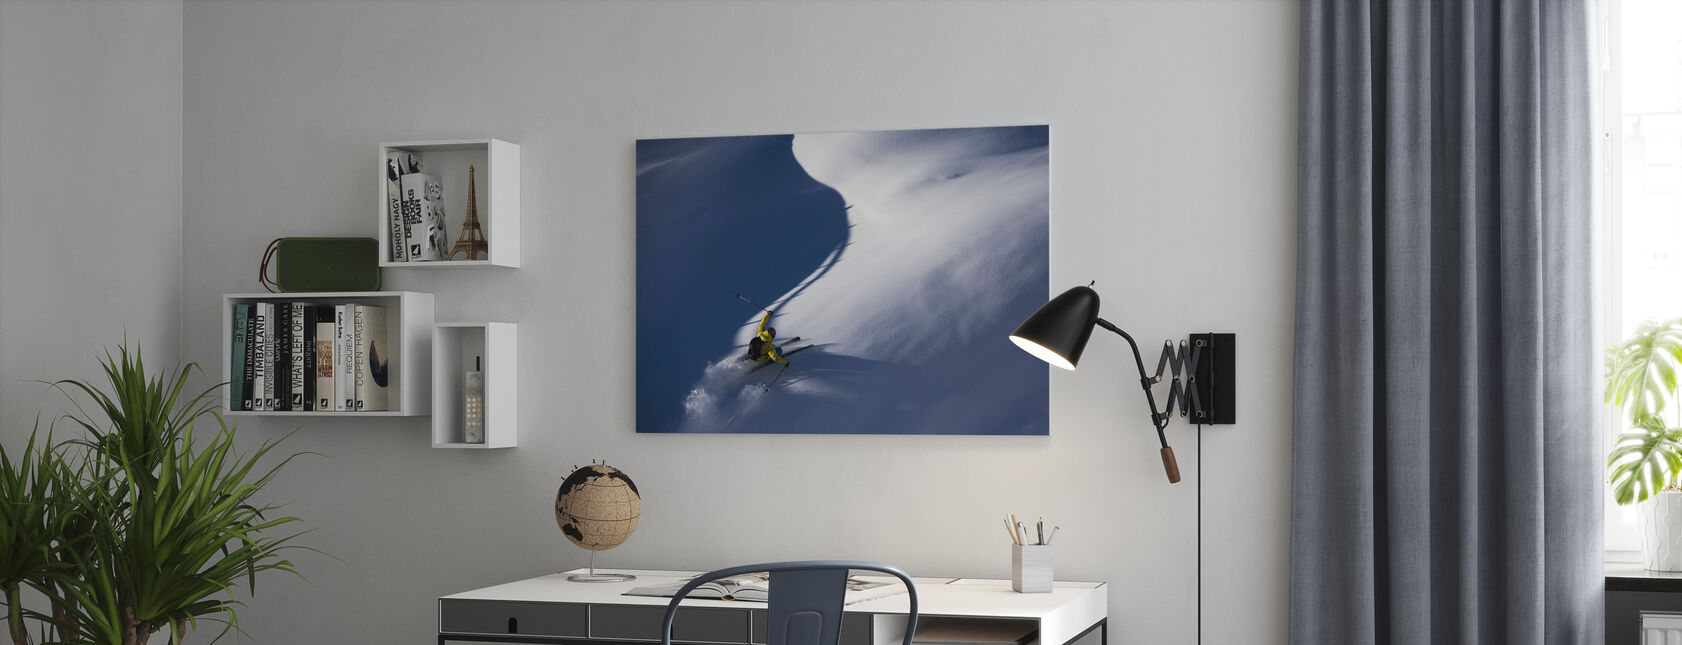 Powder Snow Skiing - Canvas print - Office